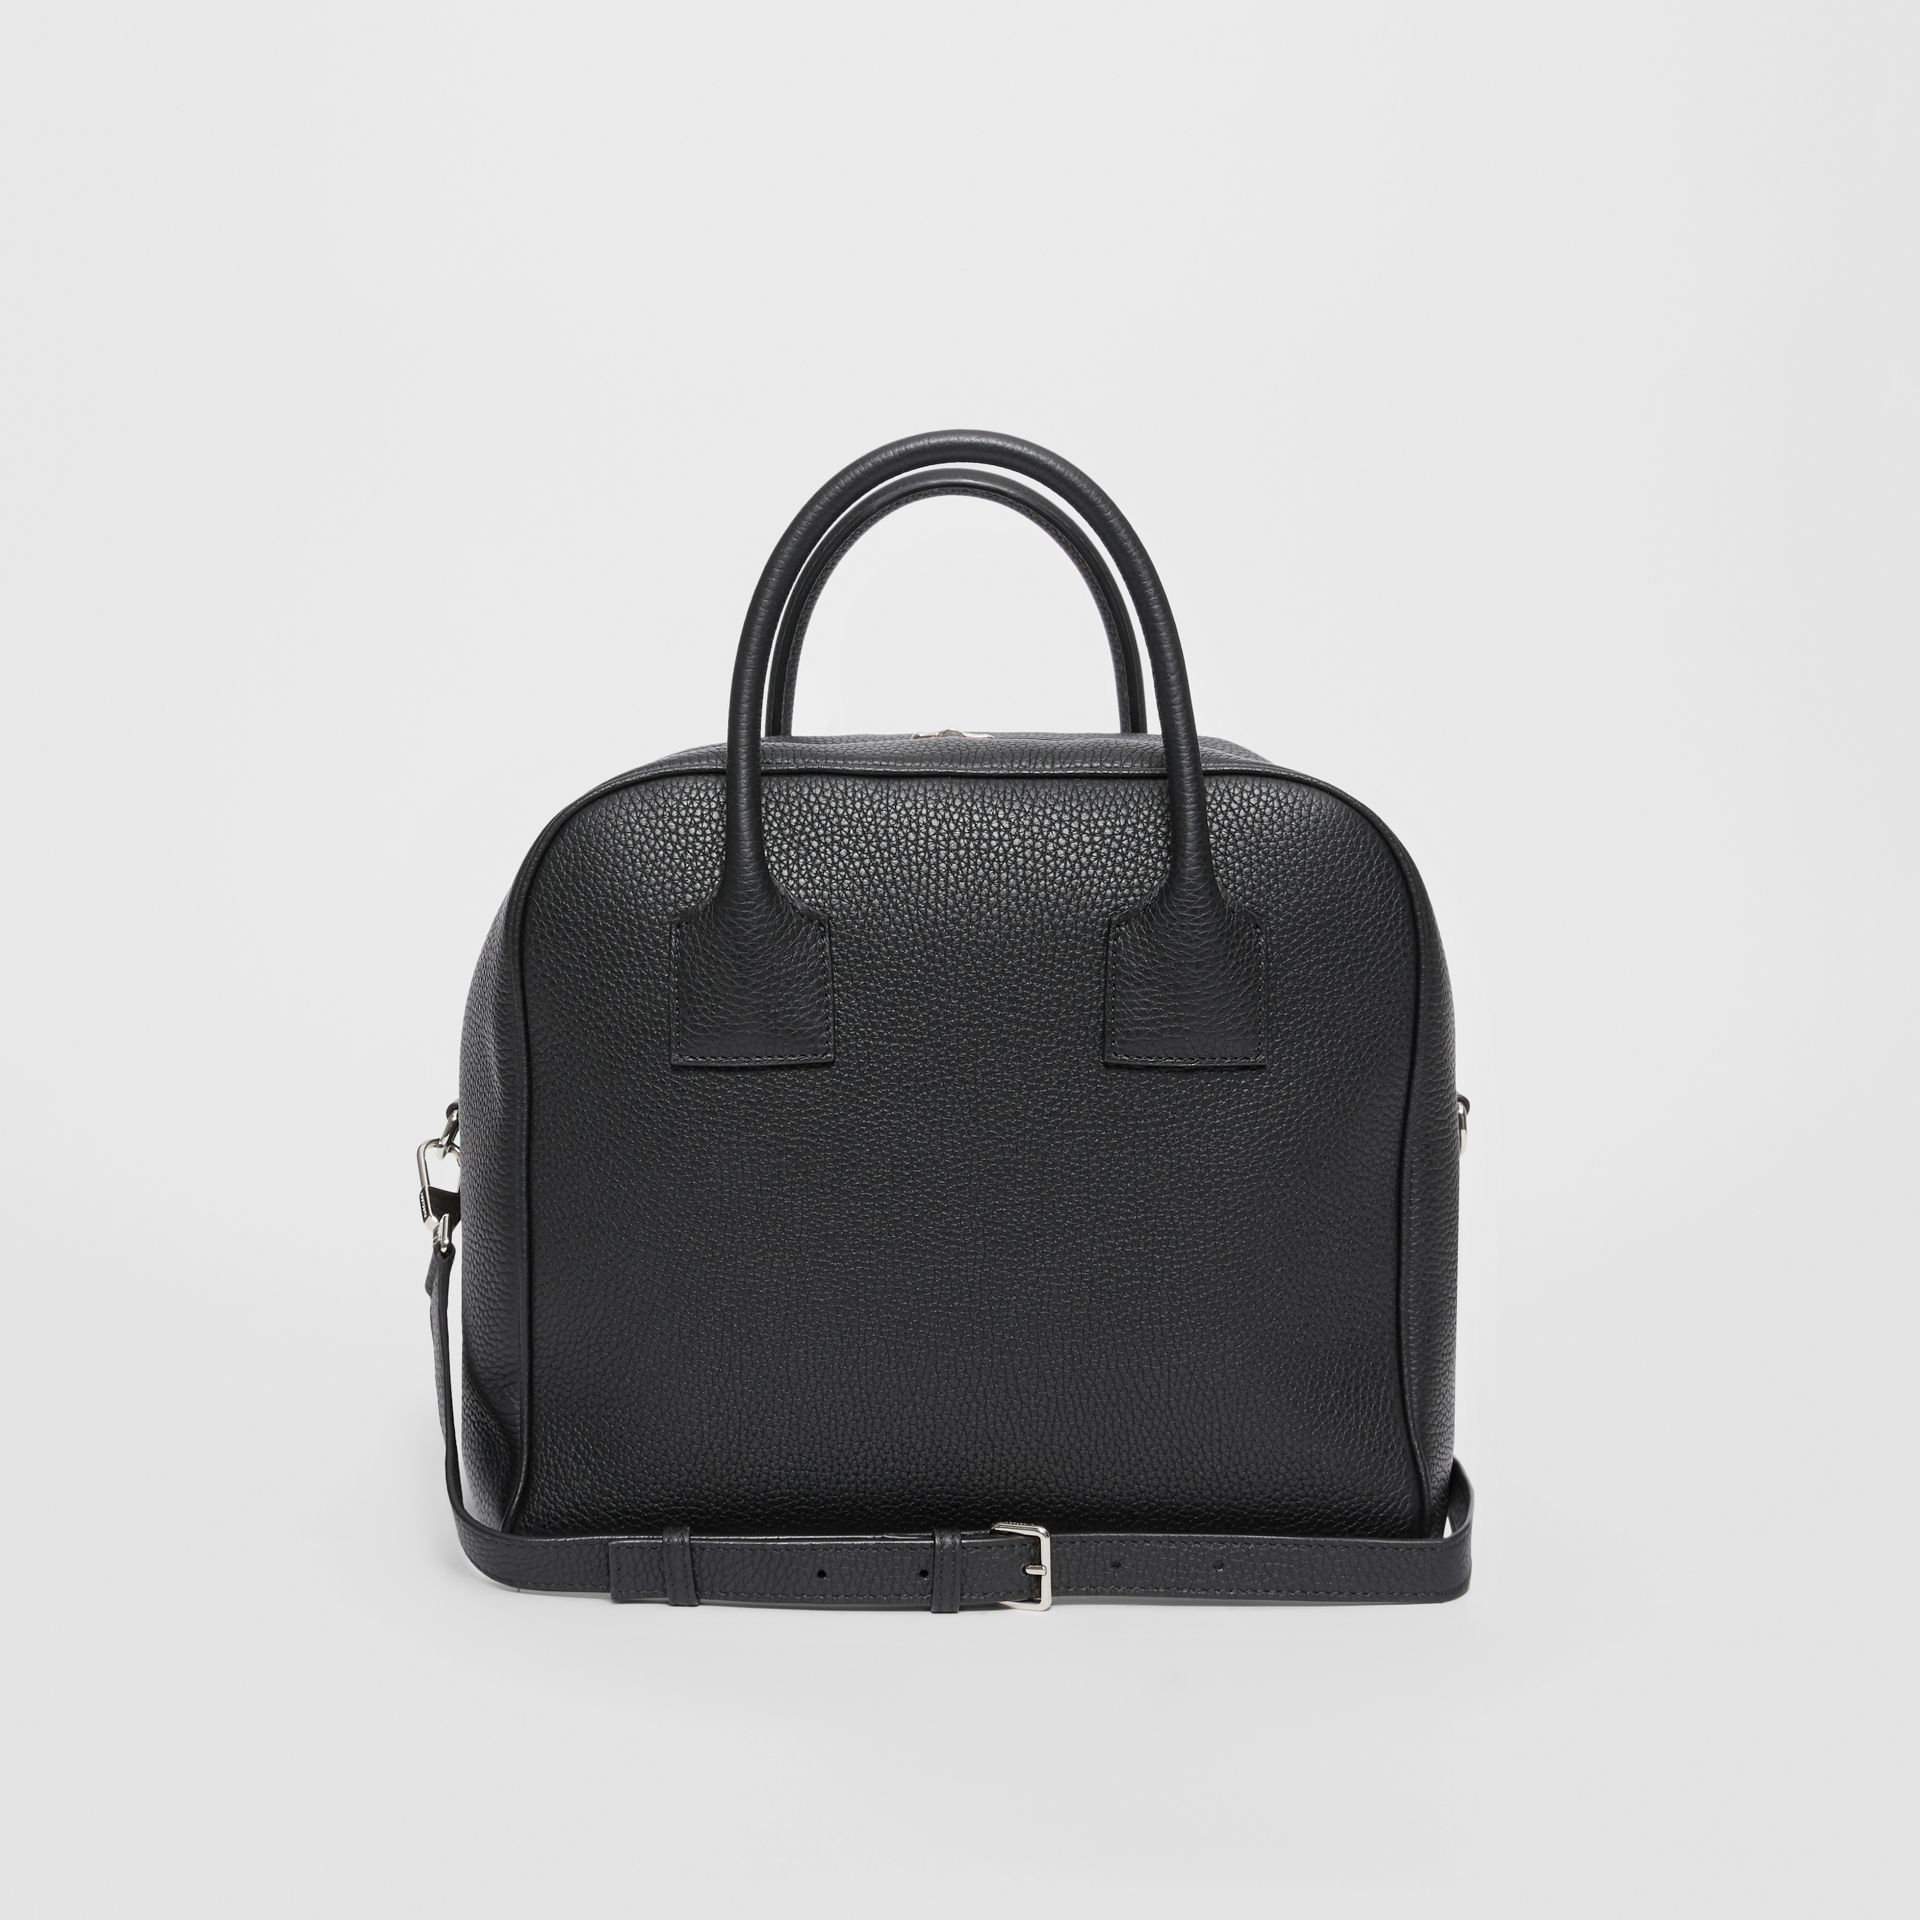 Medium Leather Cube Bag in Black - Women | Burberry - gallery image 7